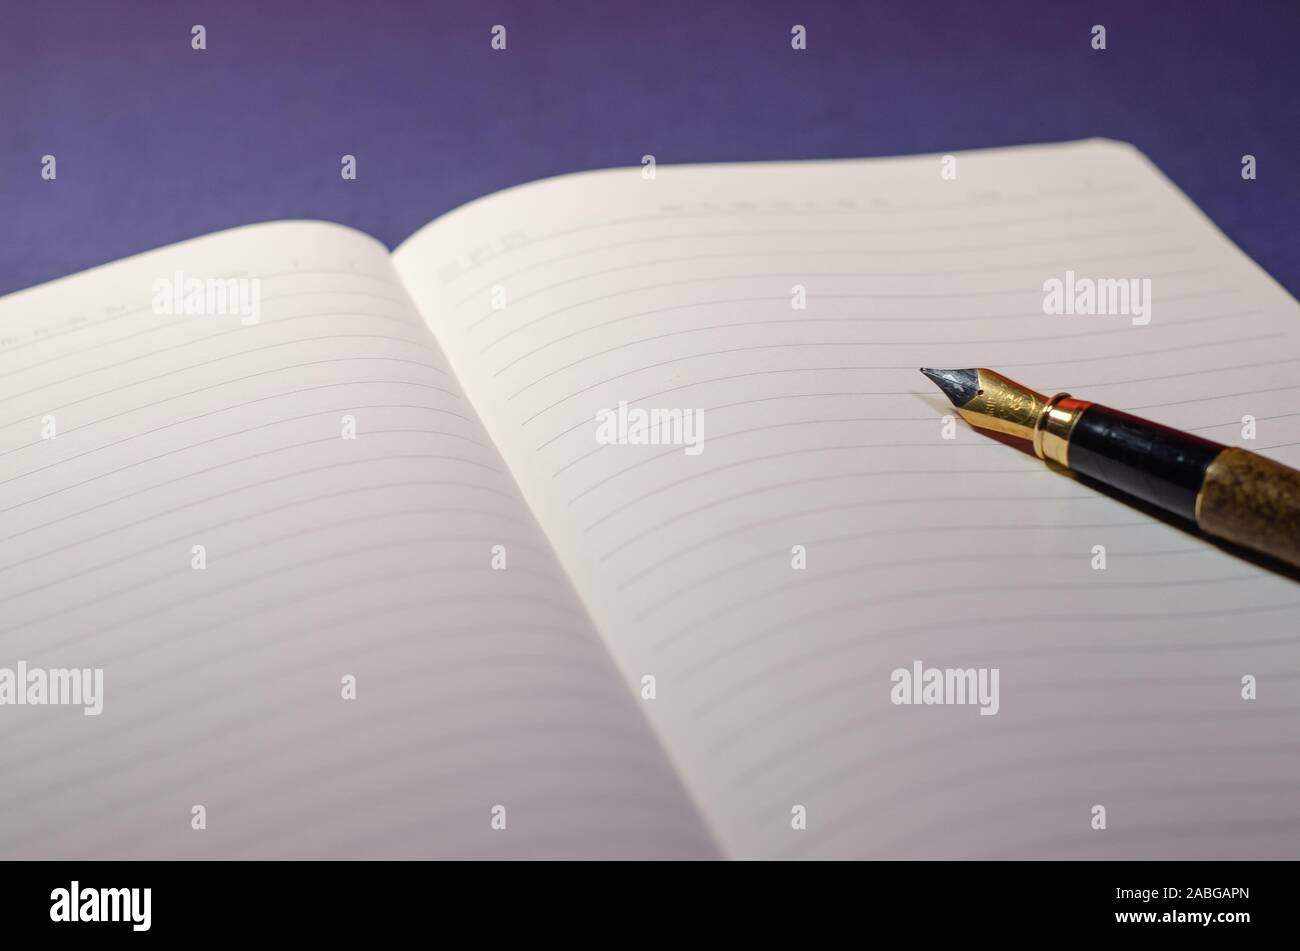 Close view of the tip of a pen writing on an open agenda or notebook with blank pages. Writing on paper with pen ink. Blue surface, wallpaper or deskt Stock Photo